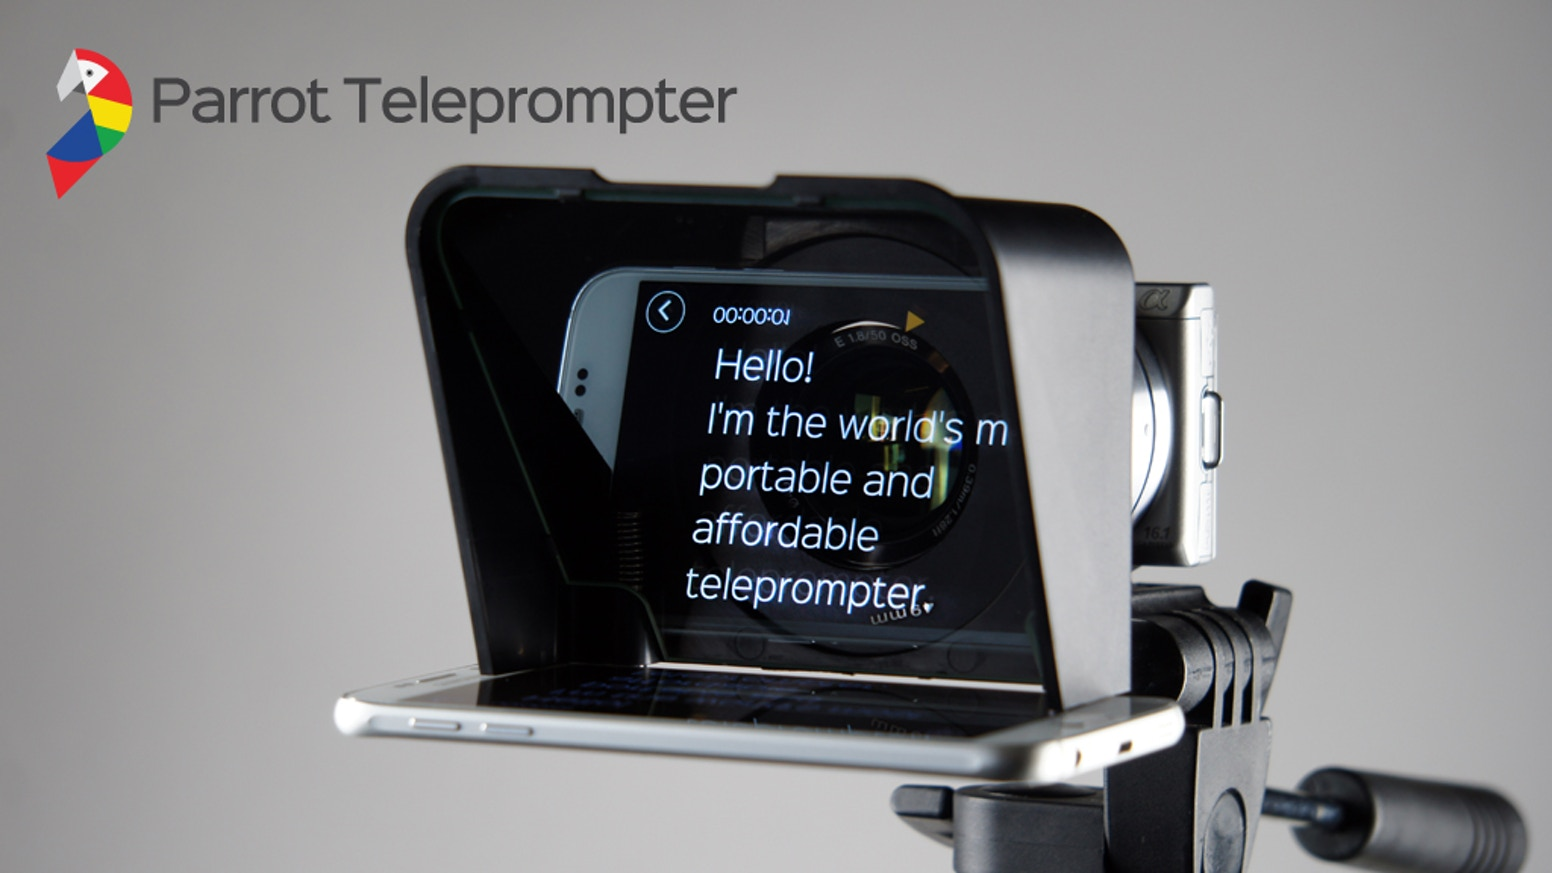 We took the worlds most portable and affordable professional teleprompter and made it even better!